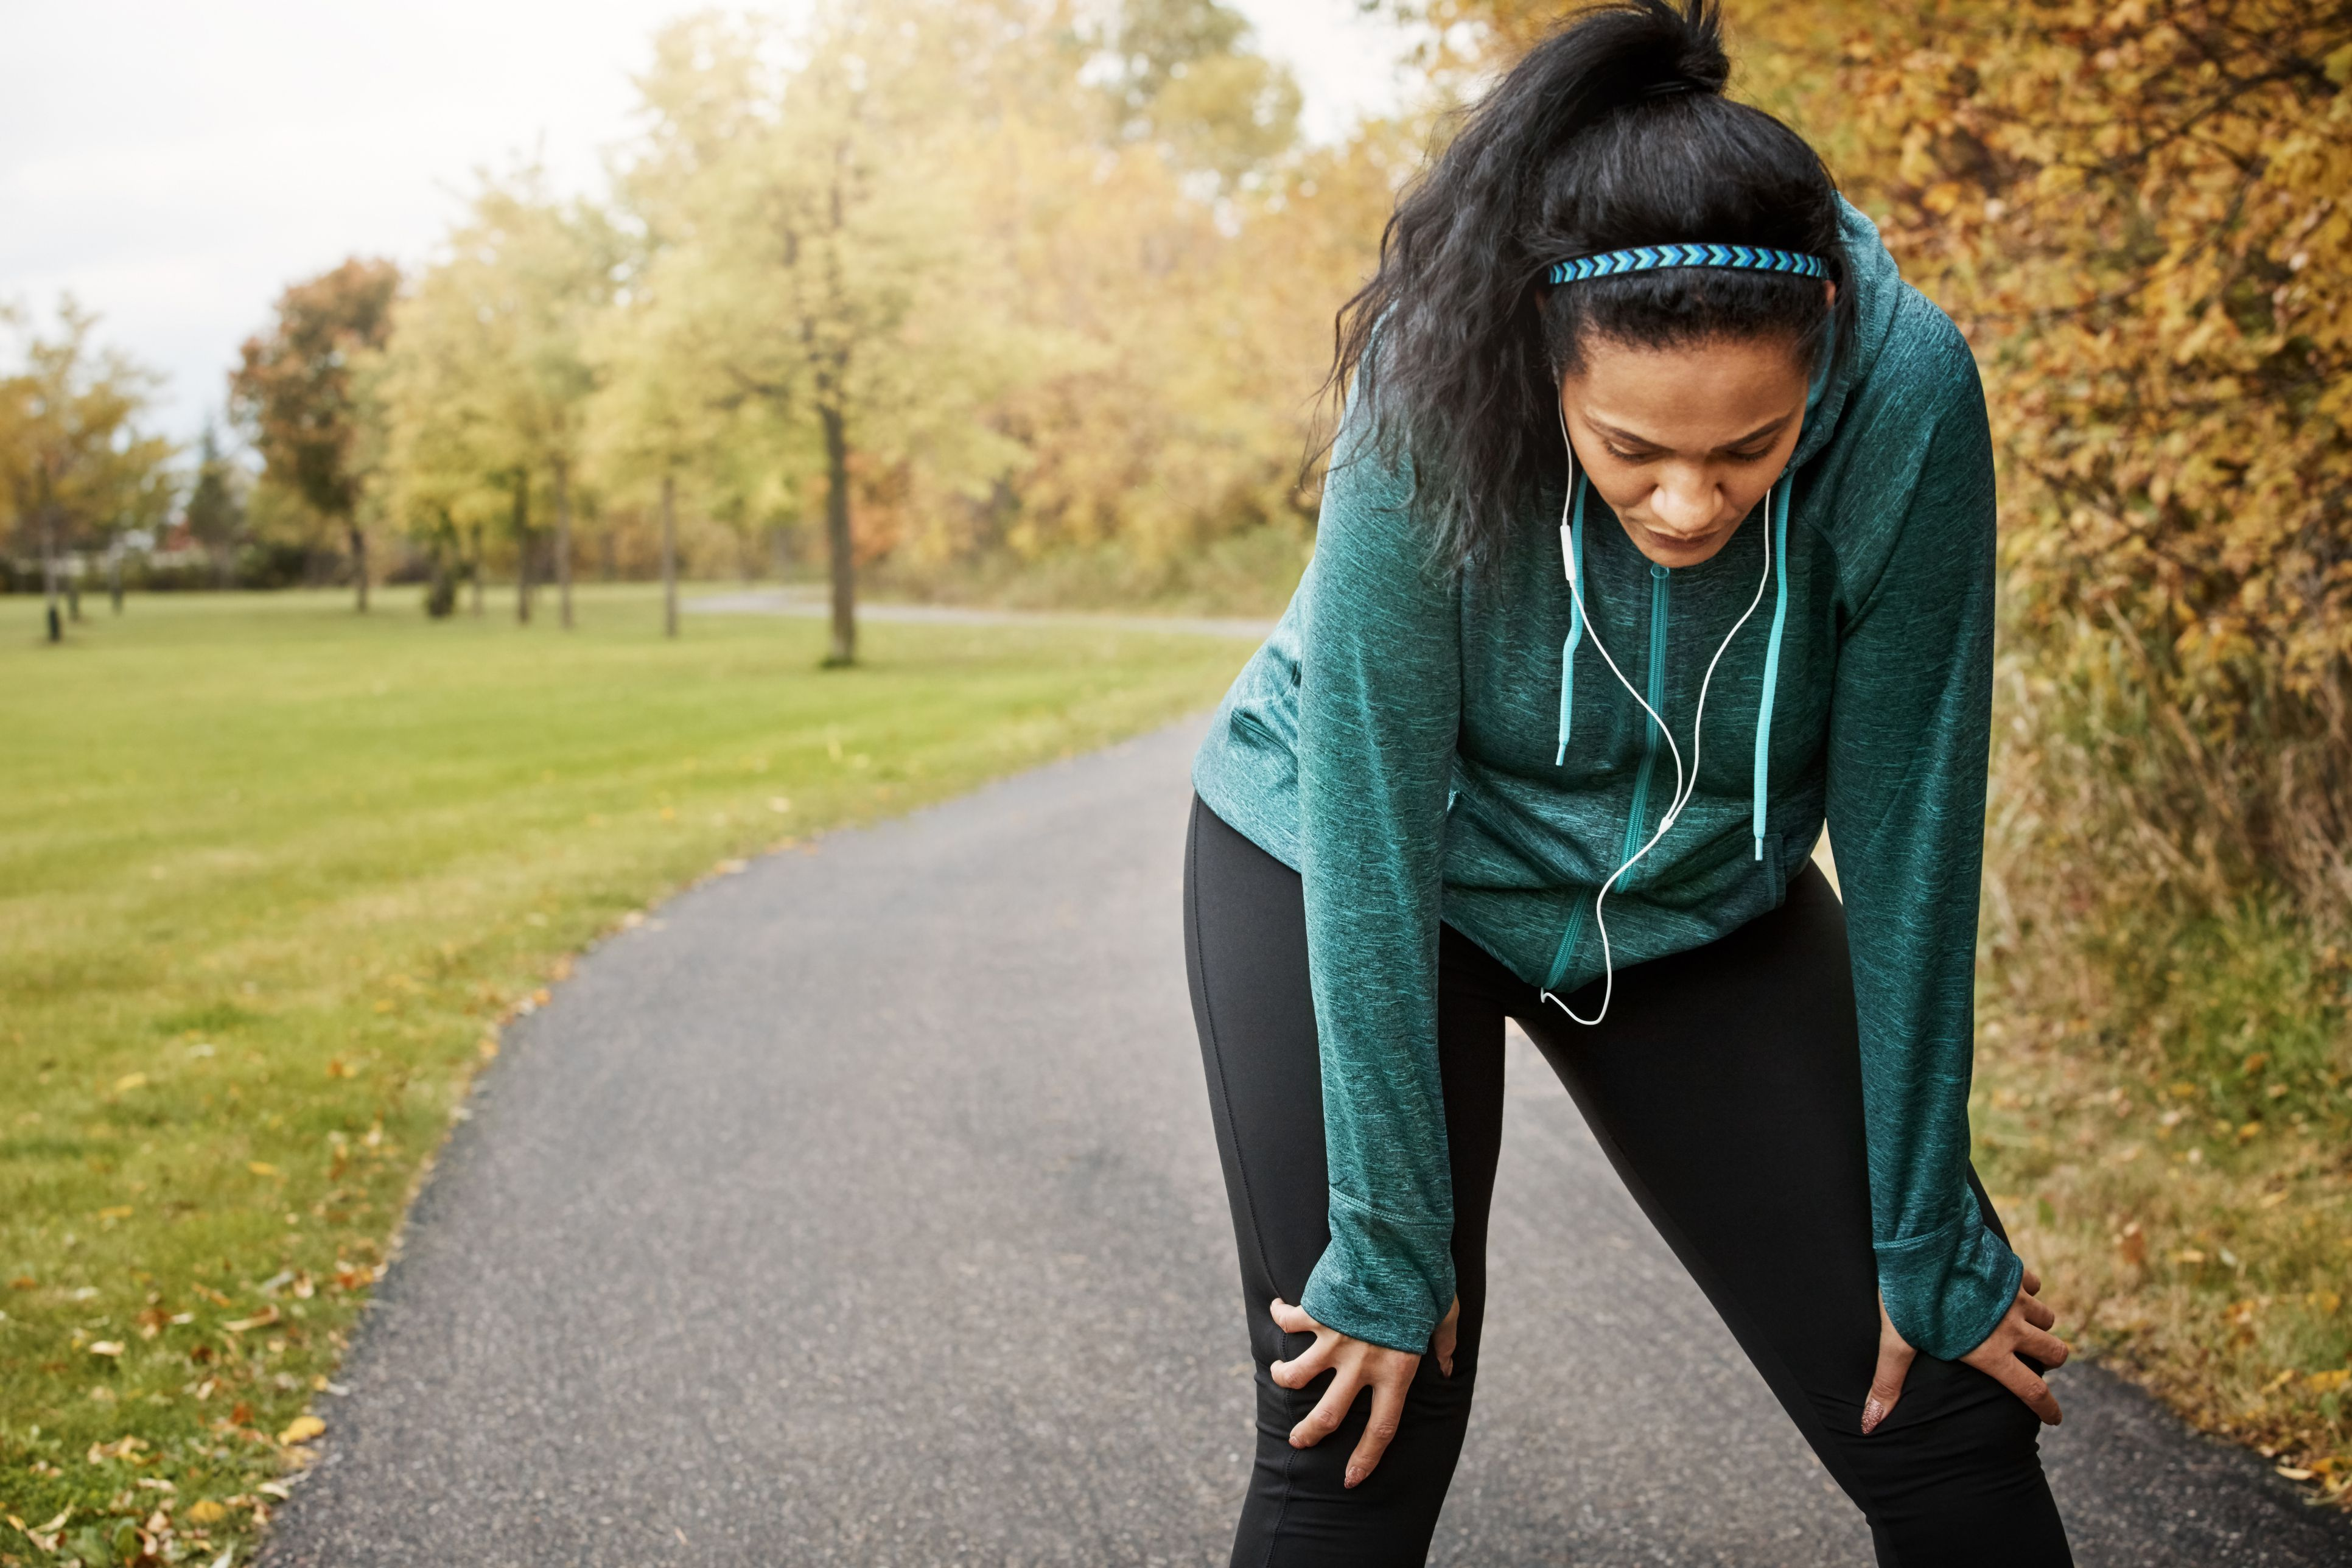 Exercise can be challenging. Do it anyway